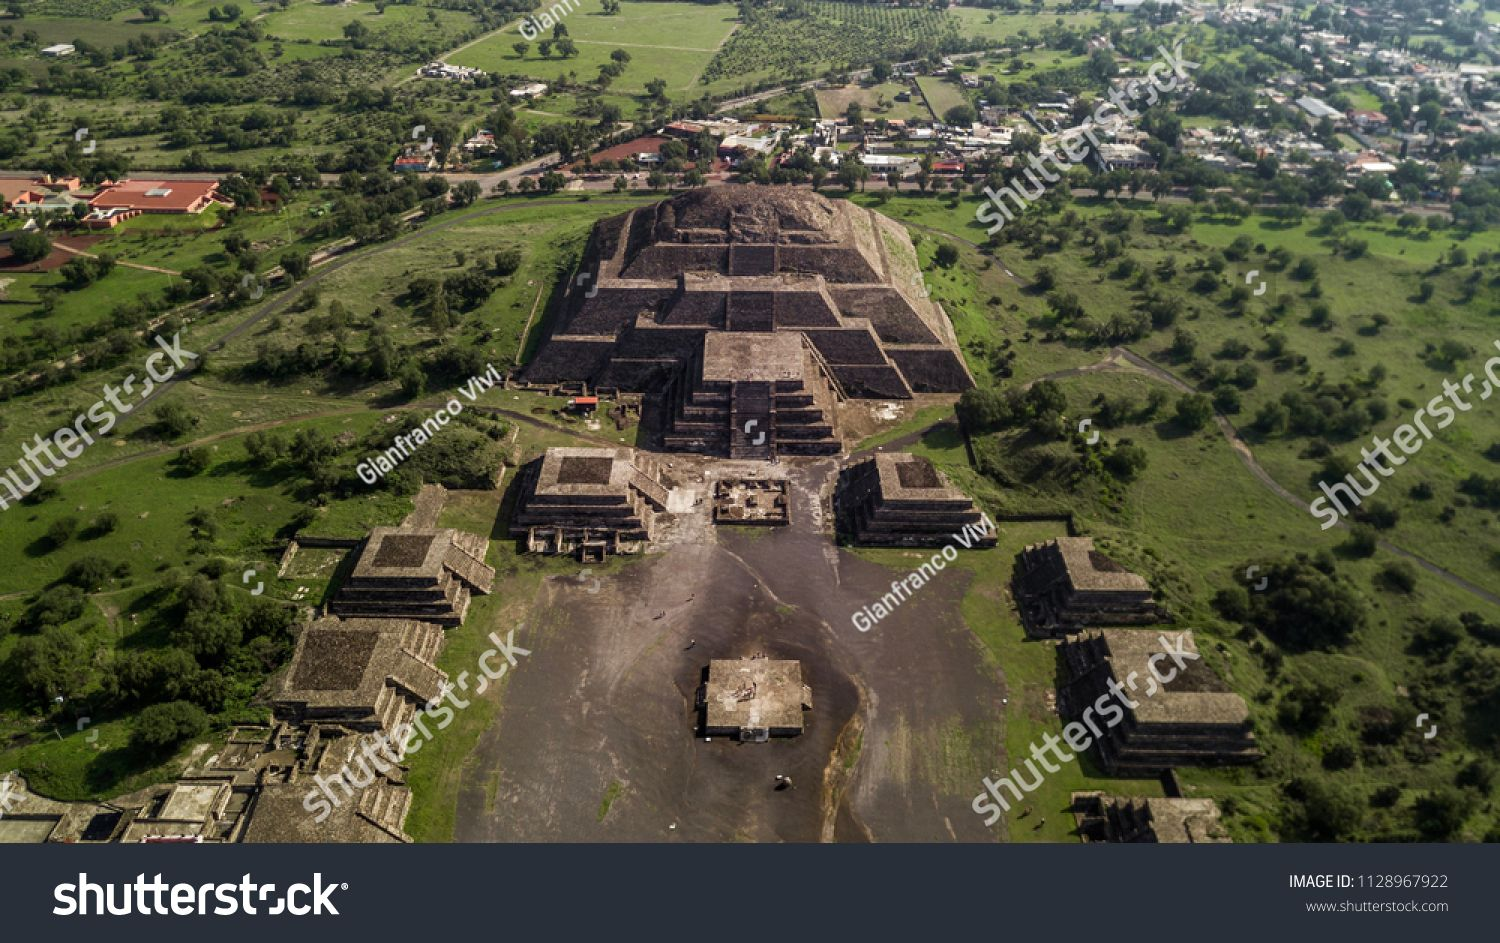 Beautiful Aerial View Of The Mexican Pyramids Of Teotihuacan Sun And Moonview Mexican Beautiful Aerial Teotihuacan Aerial View Ancient Cities